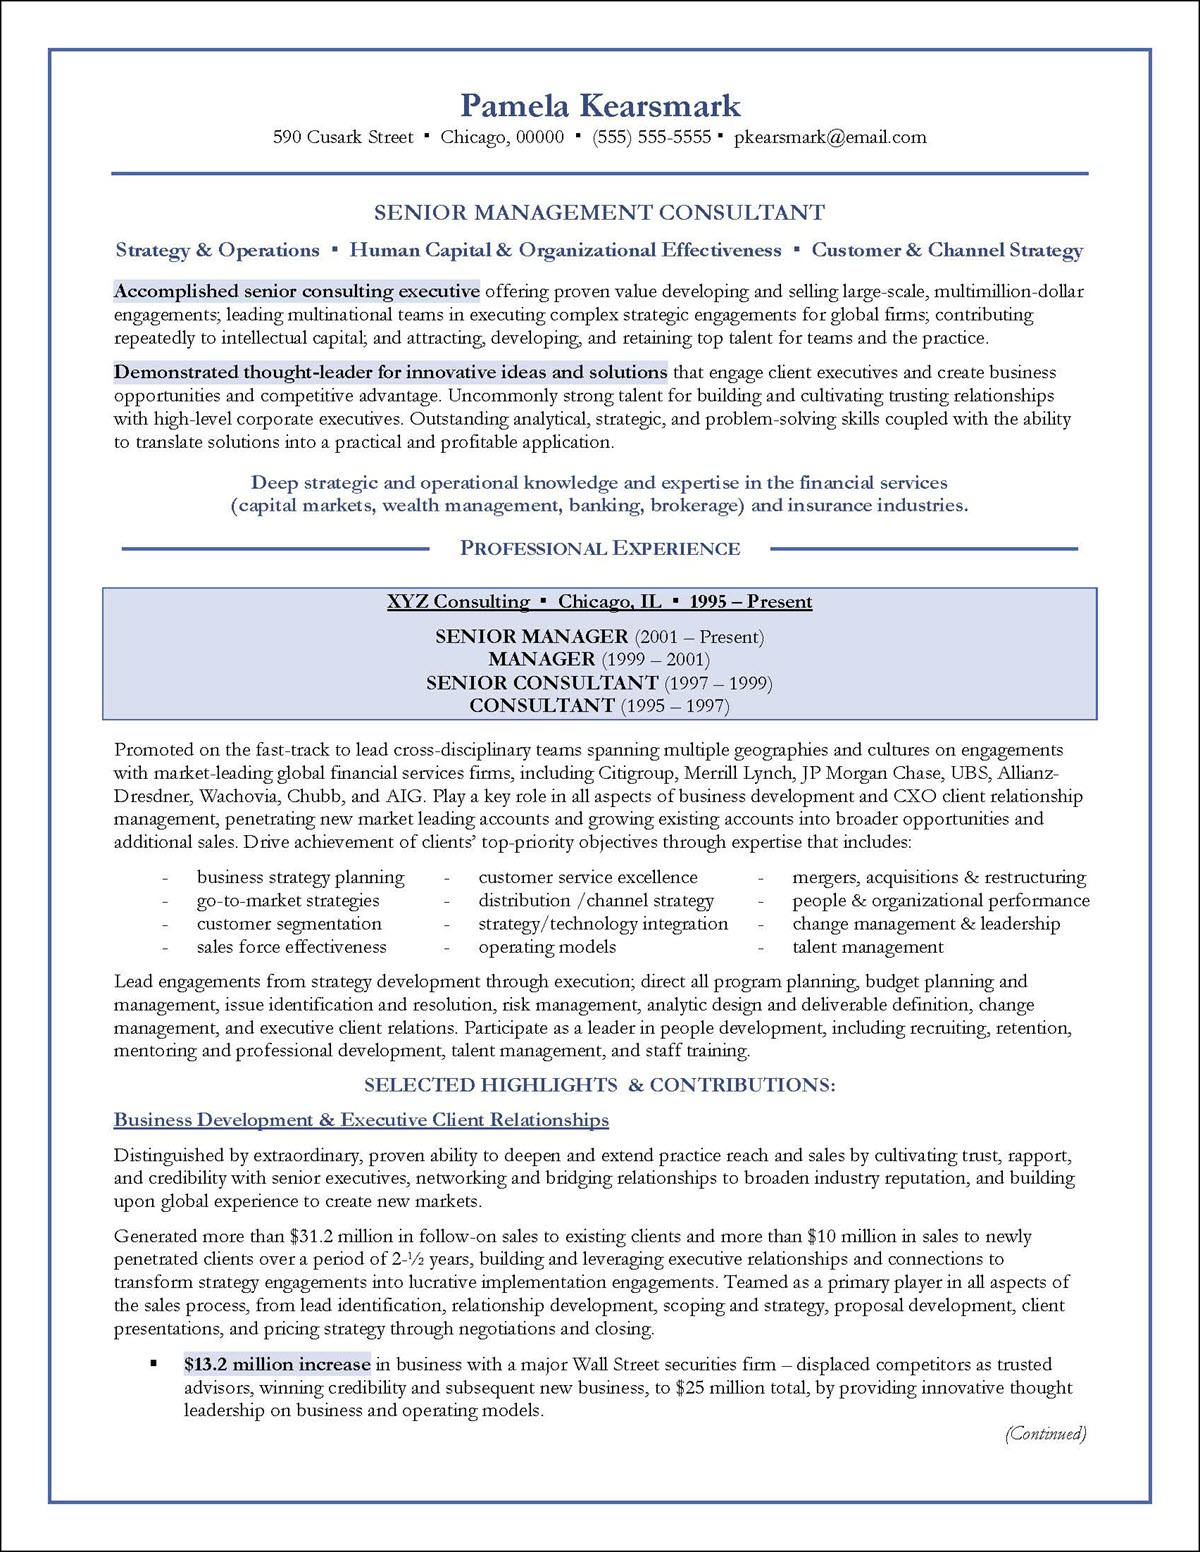 Management Consulting Resume Example Page 1  Email Resume Examples